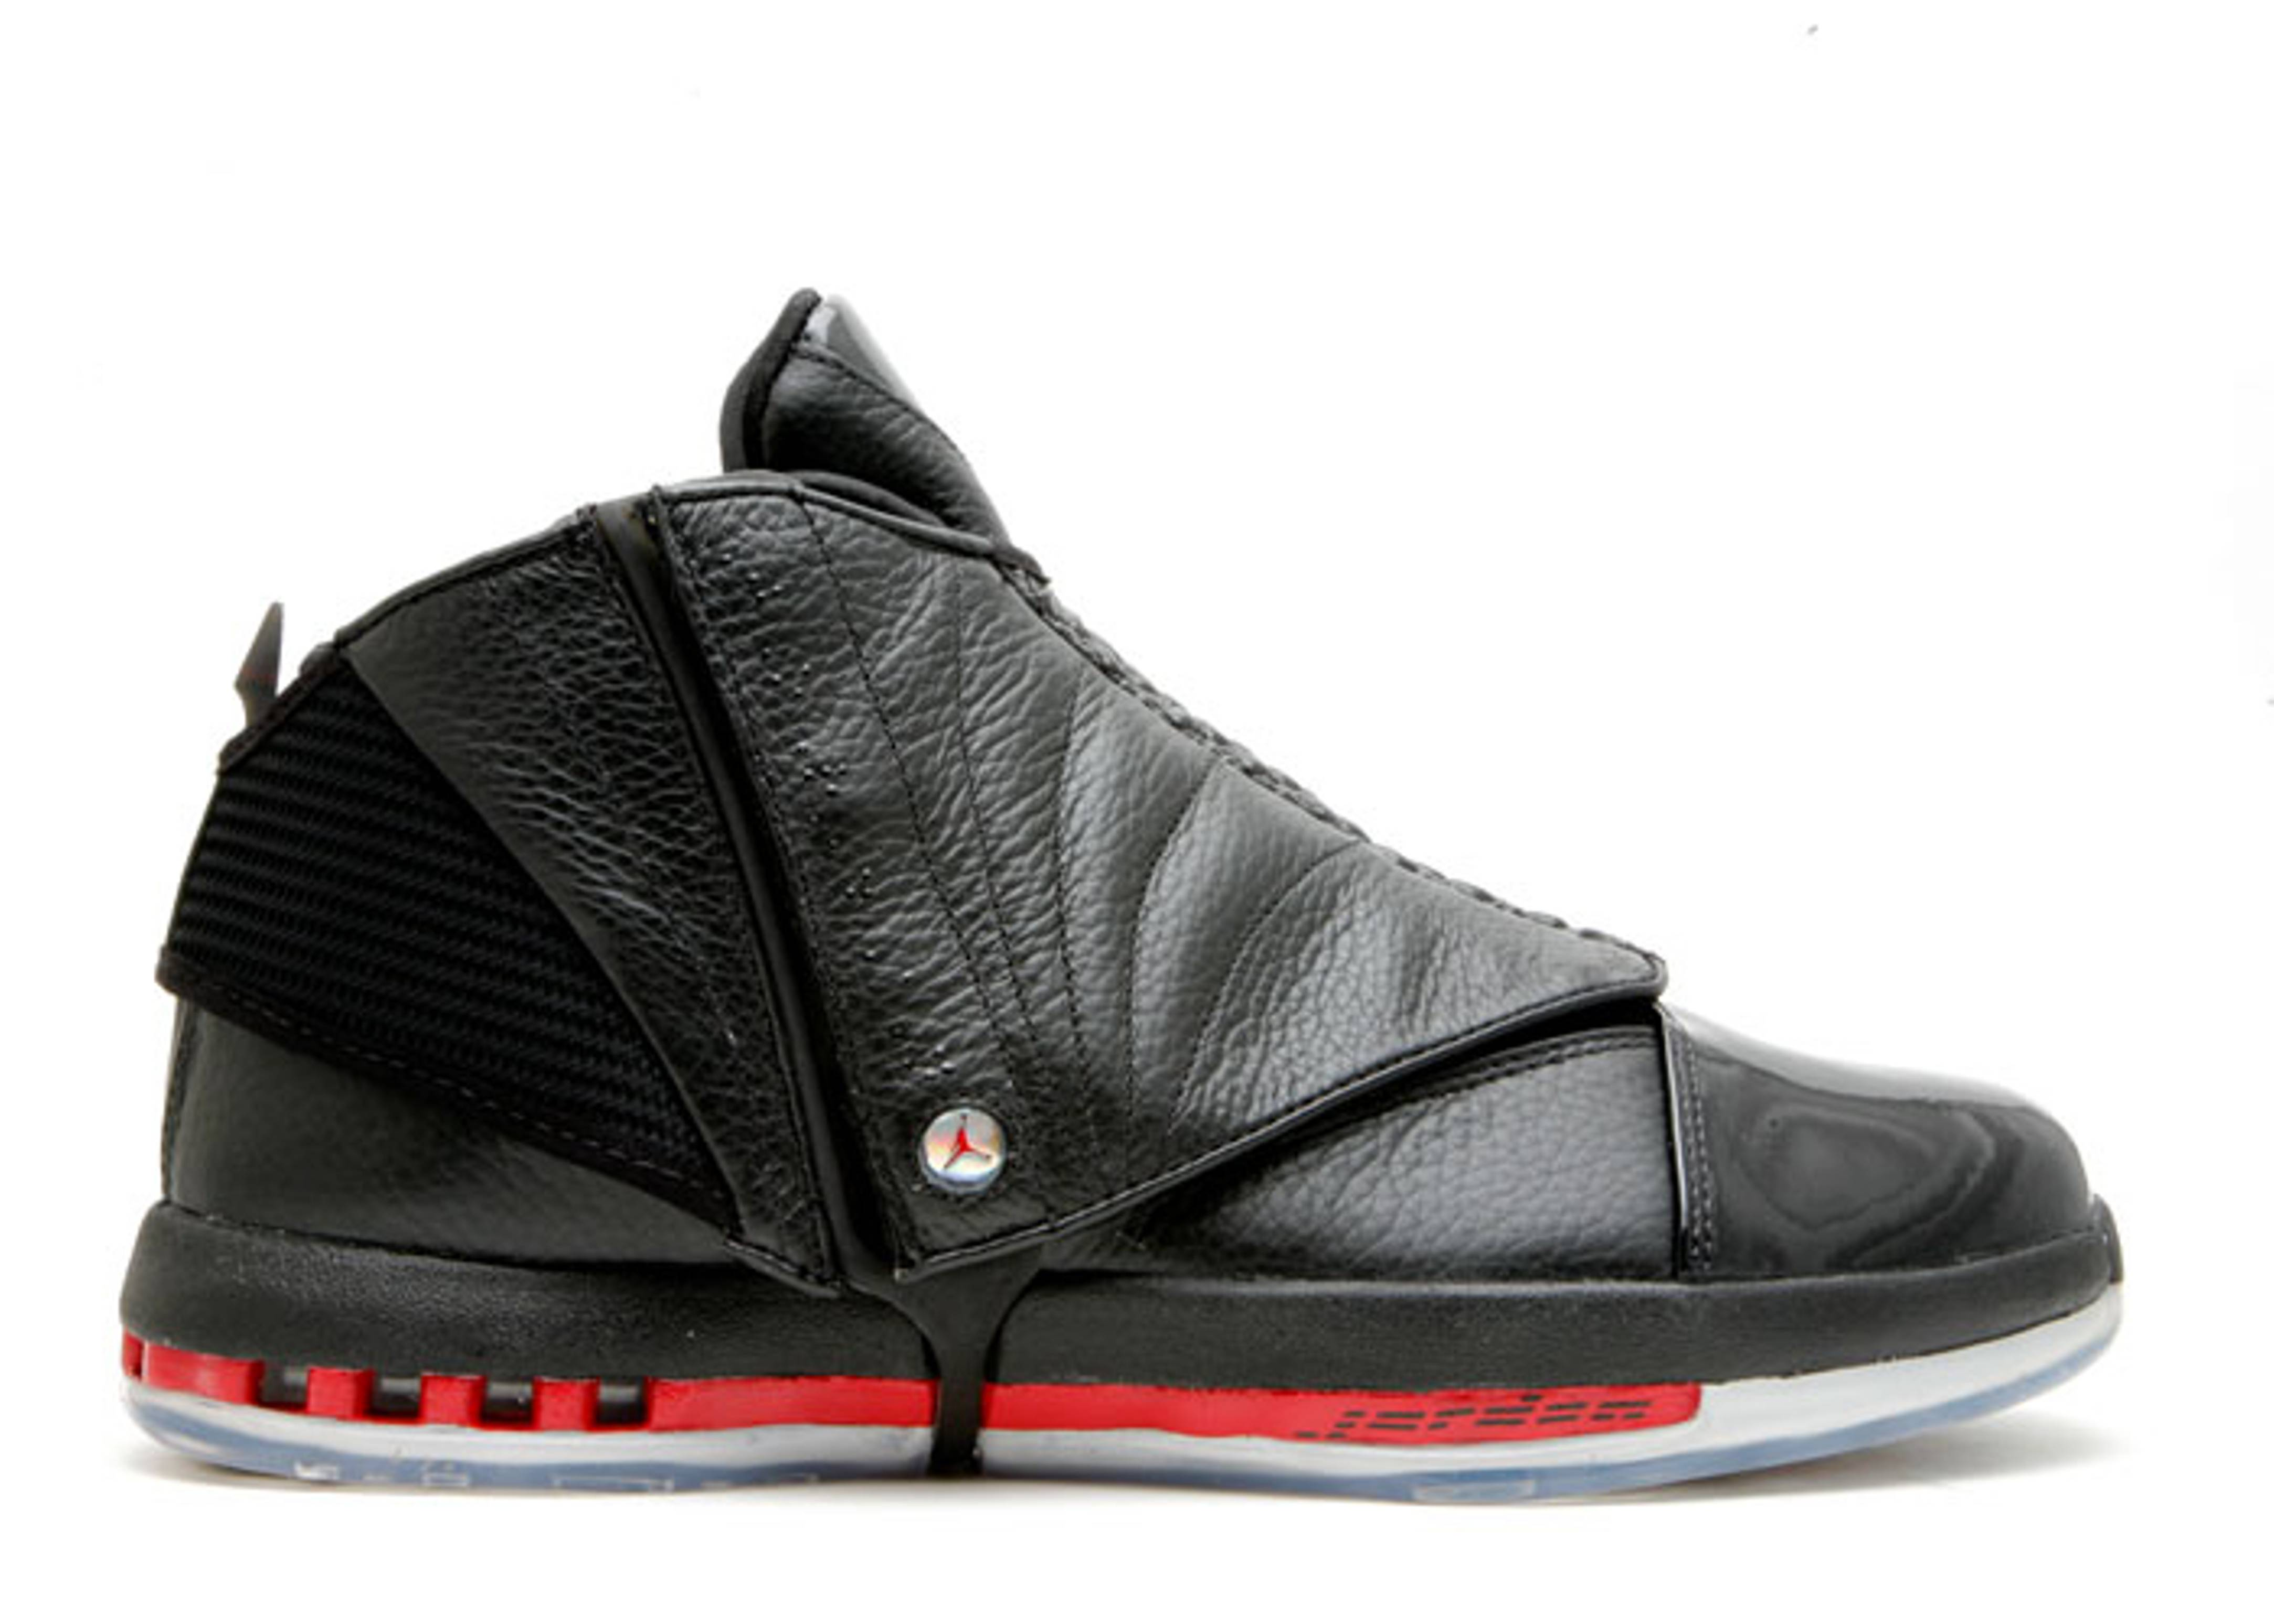 63597195150-air-jordan-16-retro-countdown-pack-black-varsity-red-010733_1.jpg